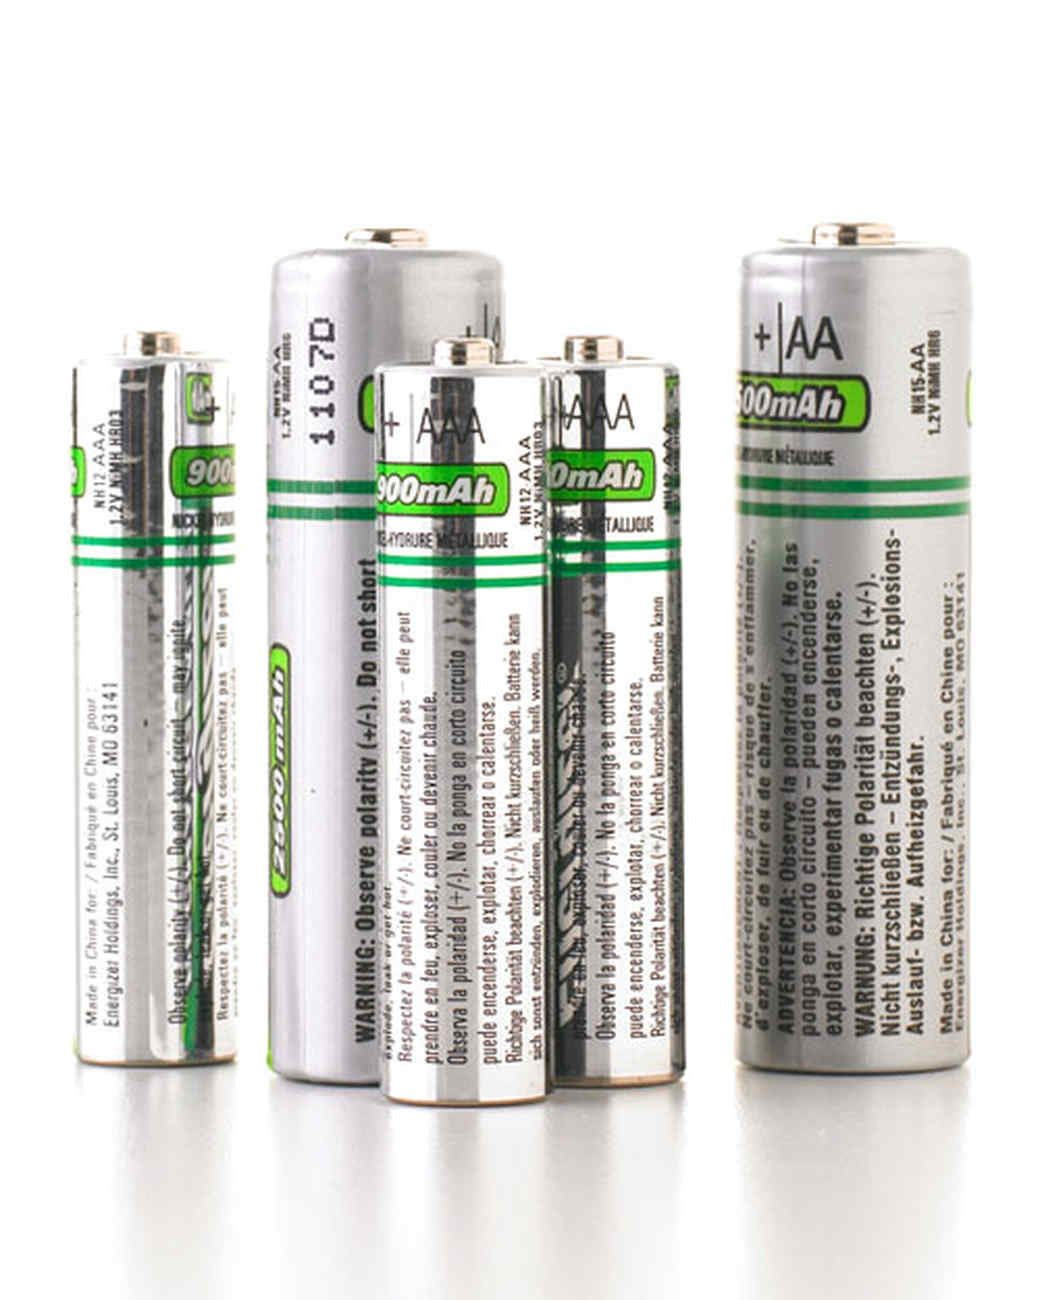 mld103796_sip08_batteries.jpg